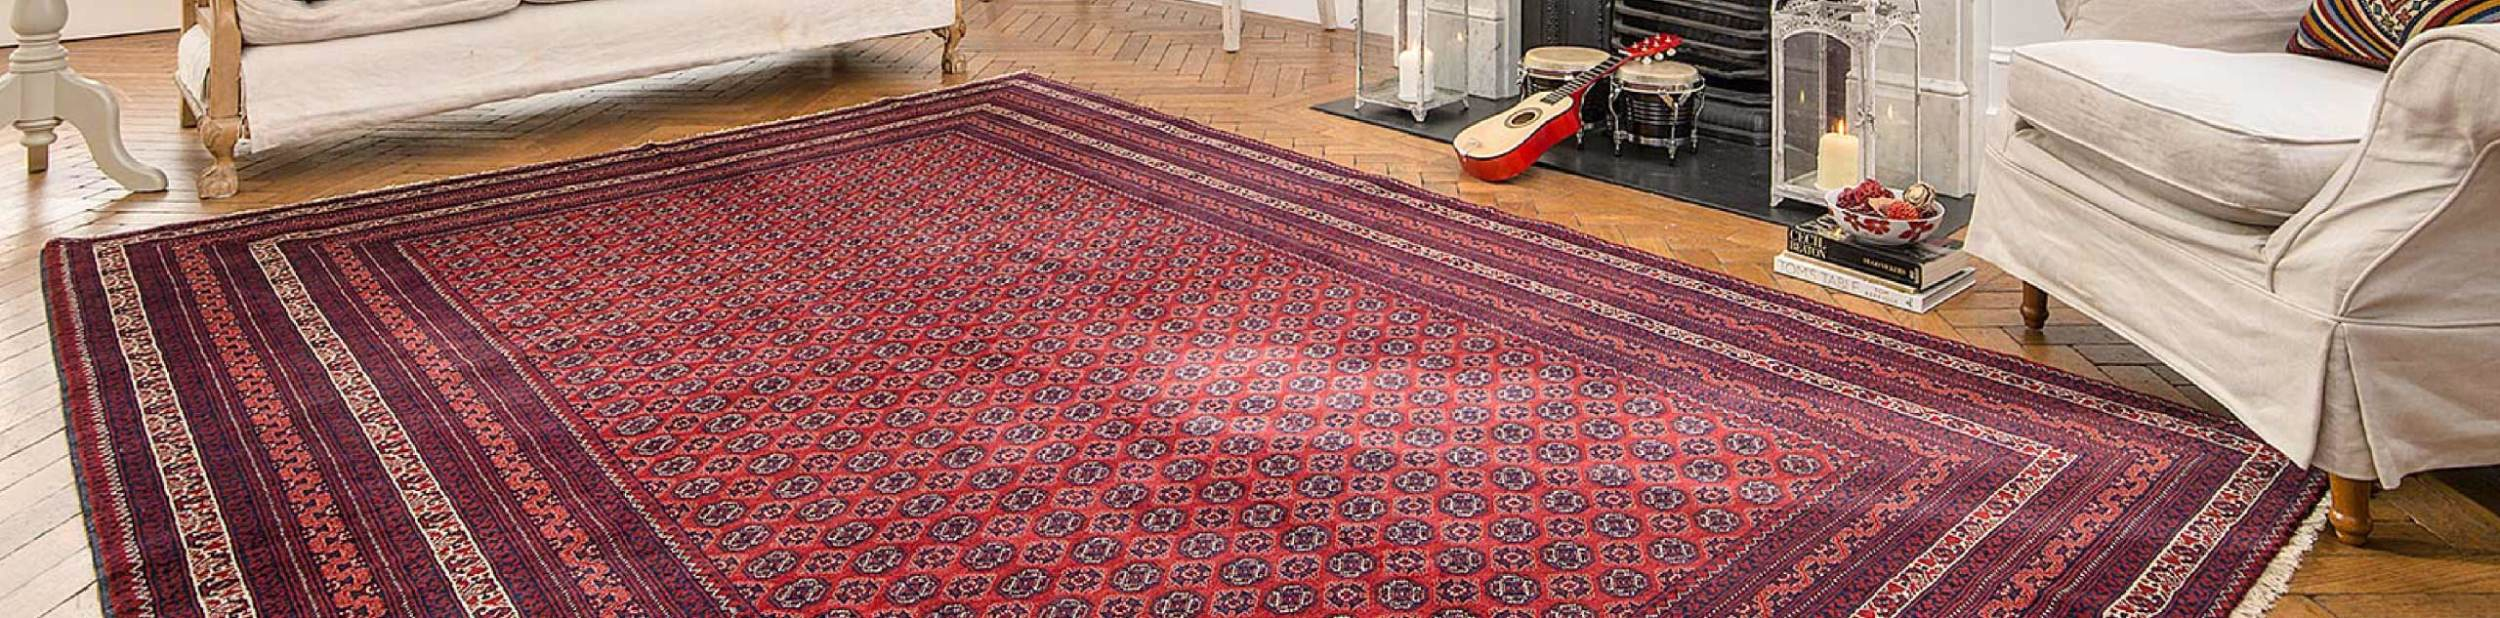 Oriental Rug Cleaning Techniques Carpet Vidalondon